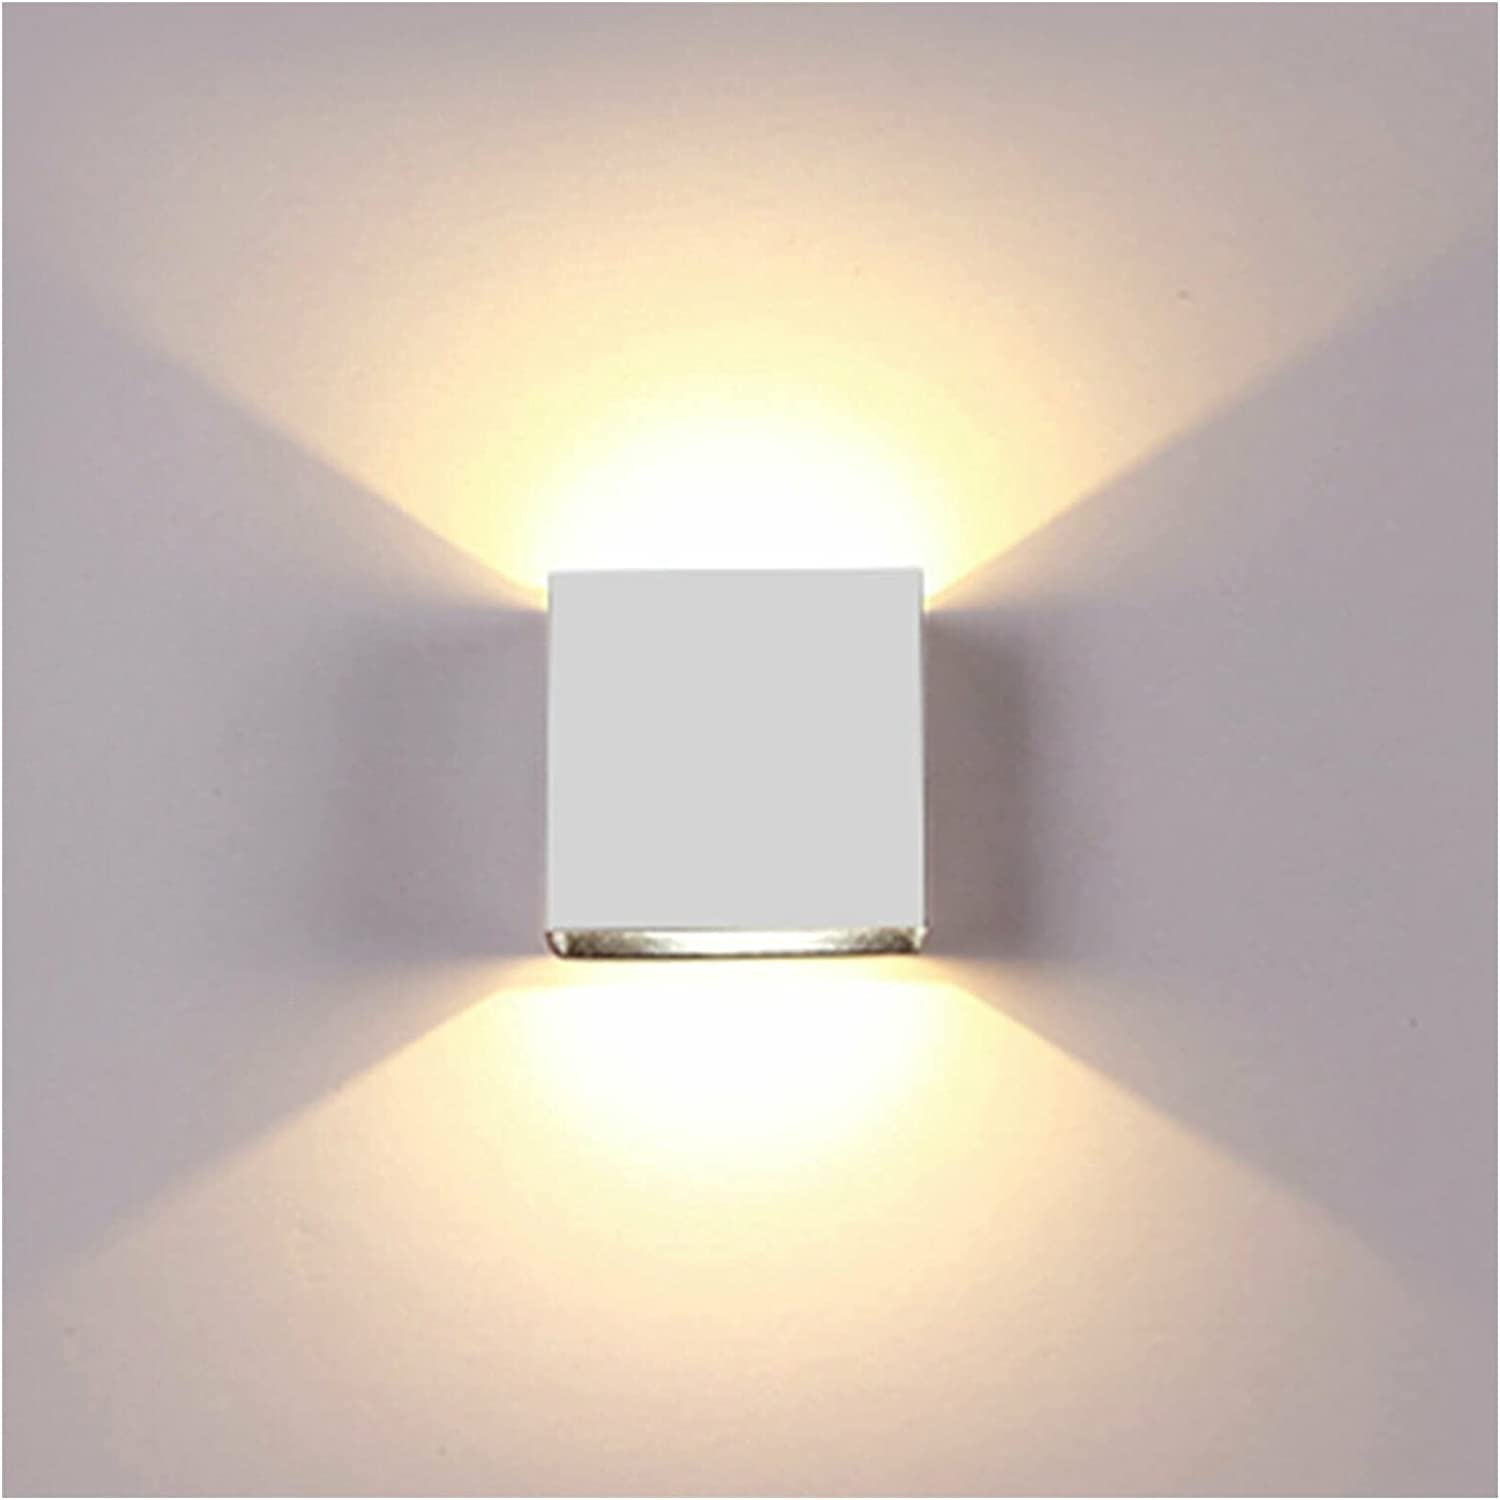 HBJSDGV NEW before selling 6W LED Wall Lamp Modern Fixture Sconce Lighting Up Down shop